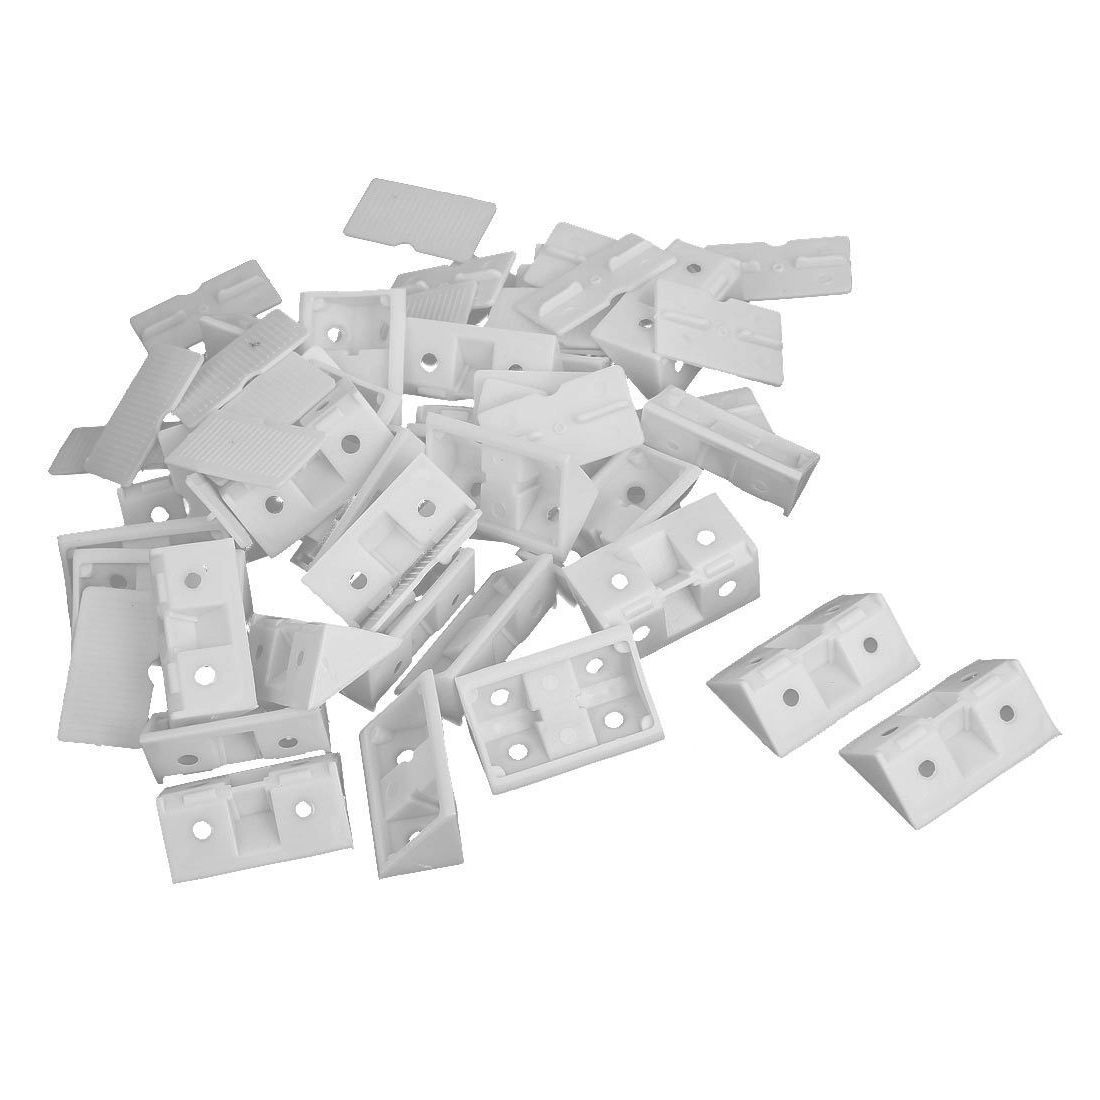 EWS  30pcs Shelf Cabinet 90 Degree Plastic Corner Braces Angle Brackets White